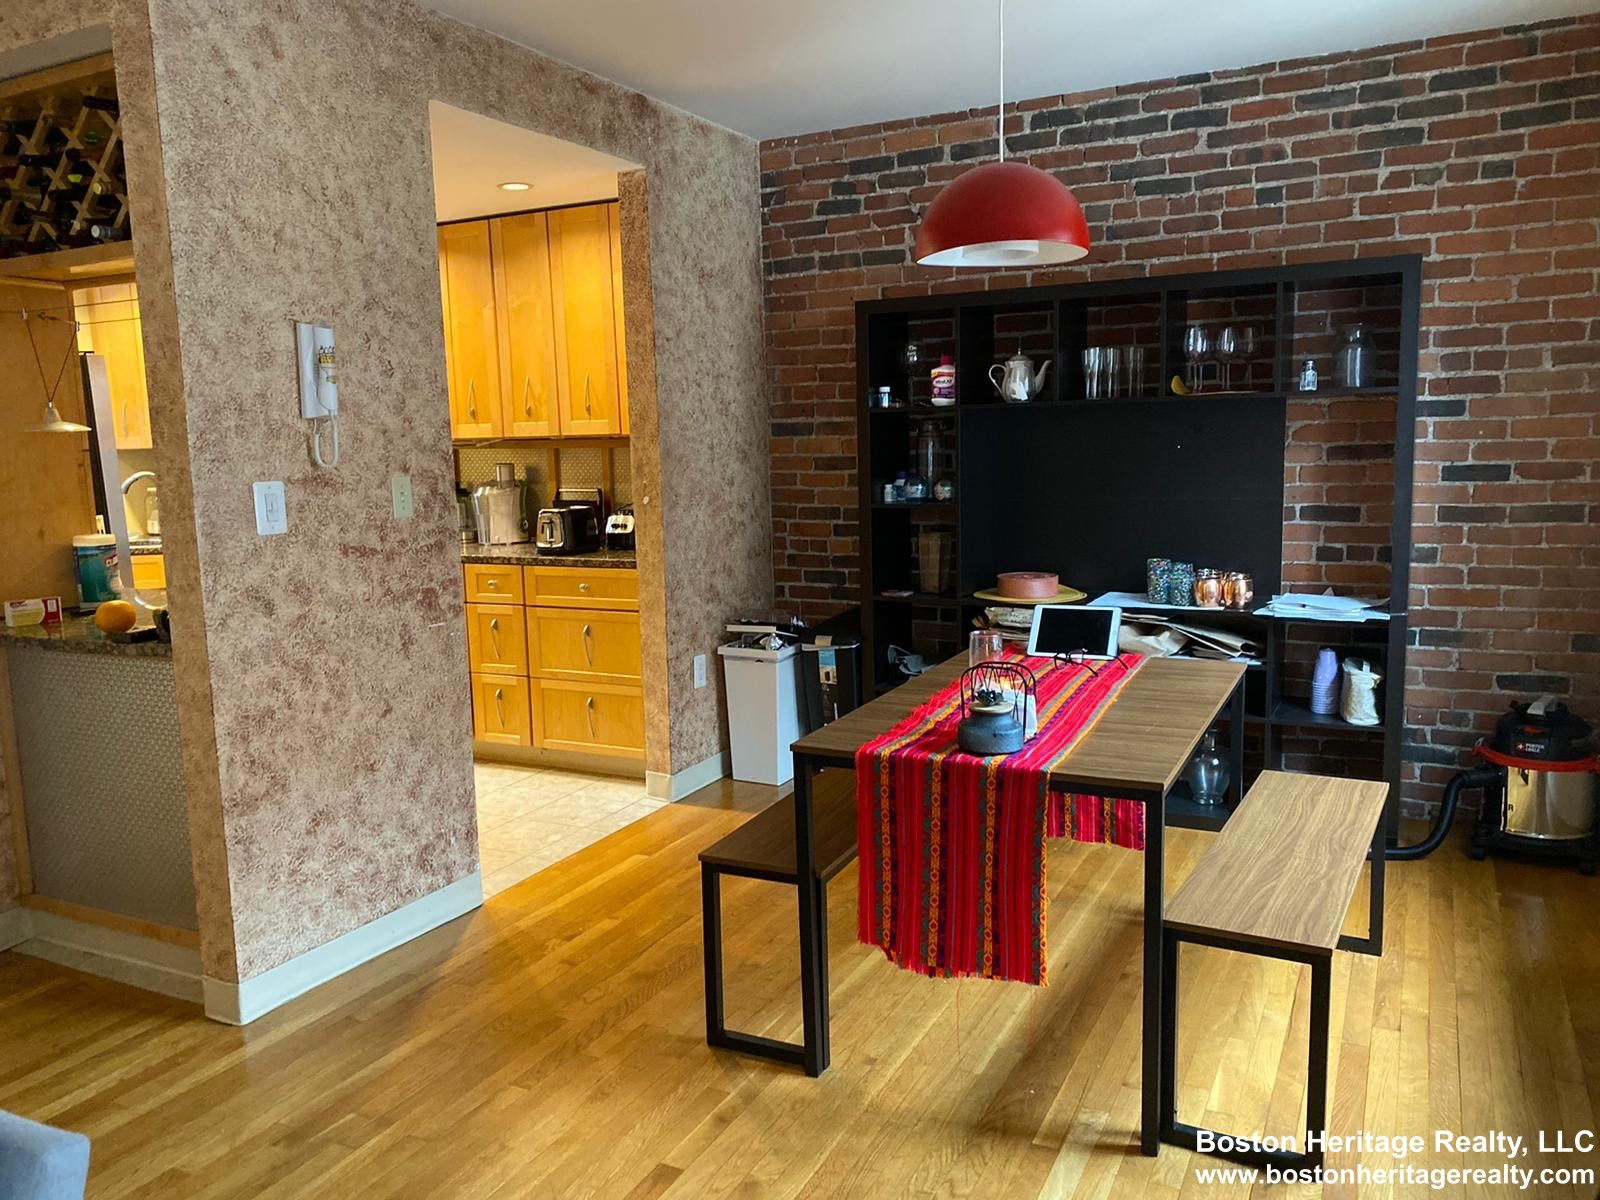 3 Beds, 2 Baths apartment in Boston, Fenway for $4,800